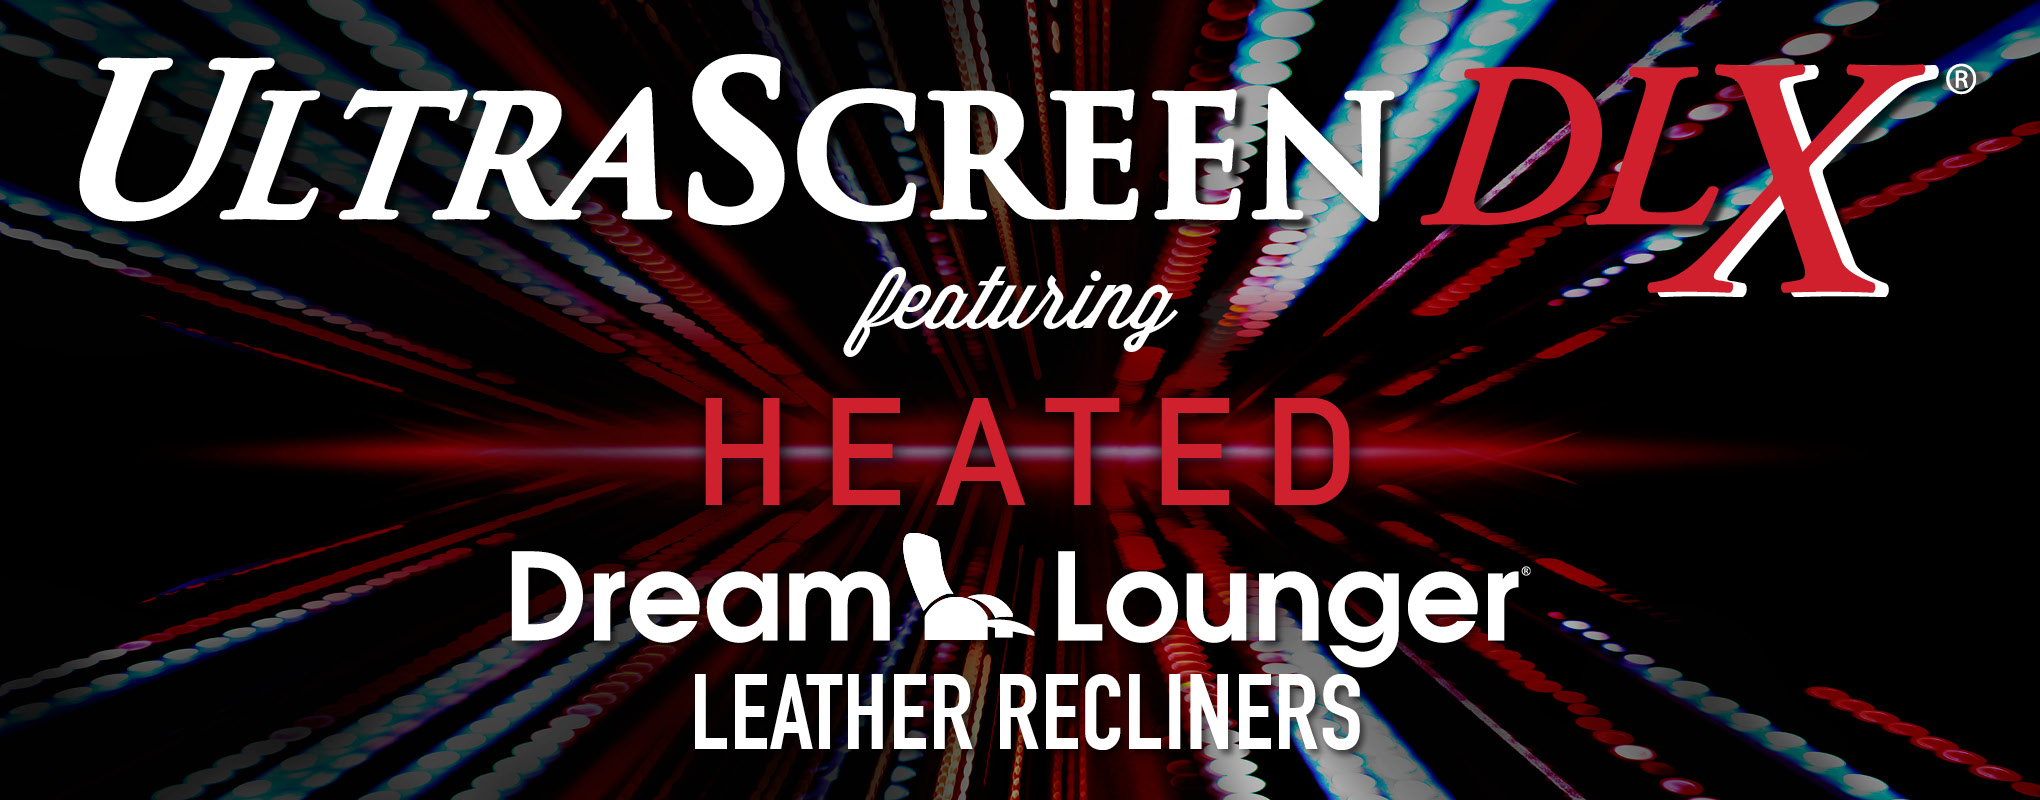 UltraScreen DLX® + Heated DreamLoungers